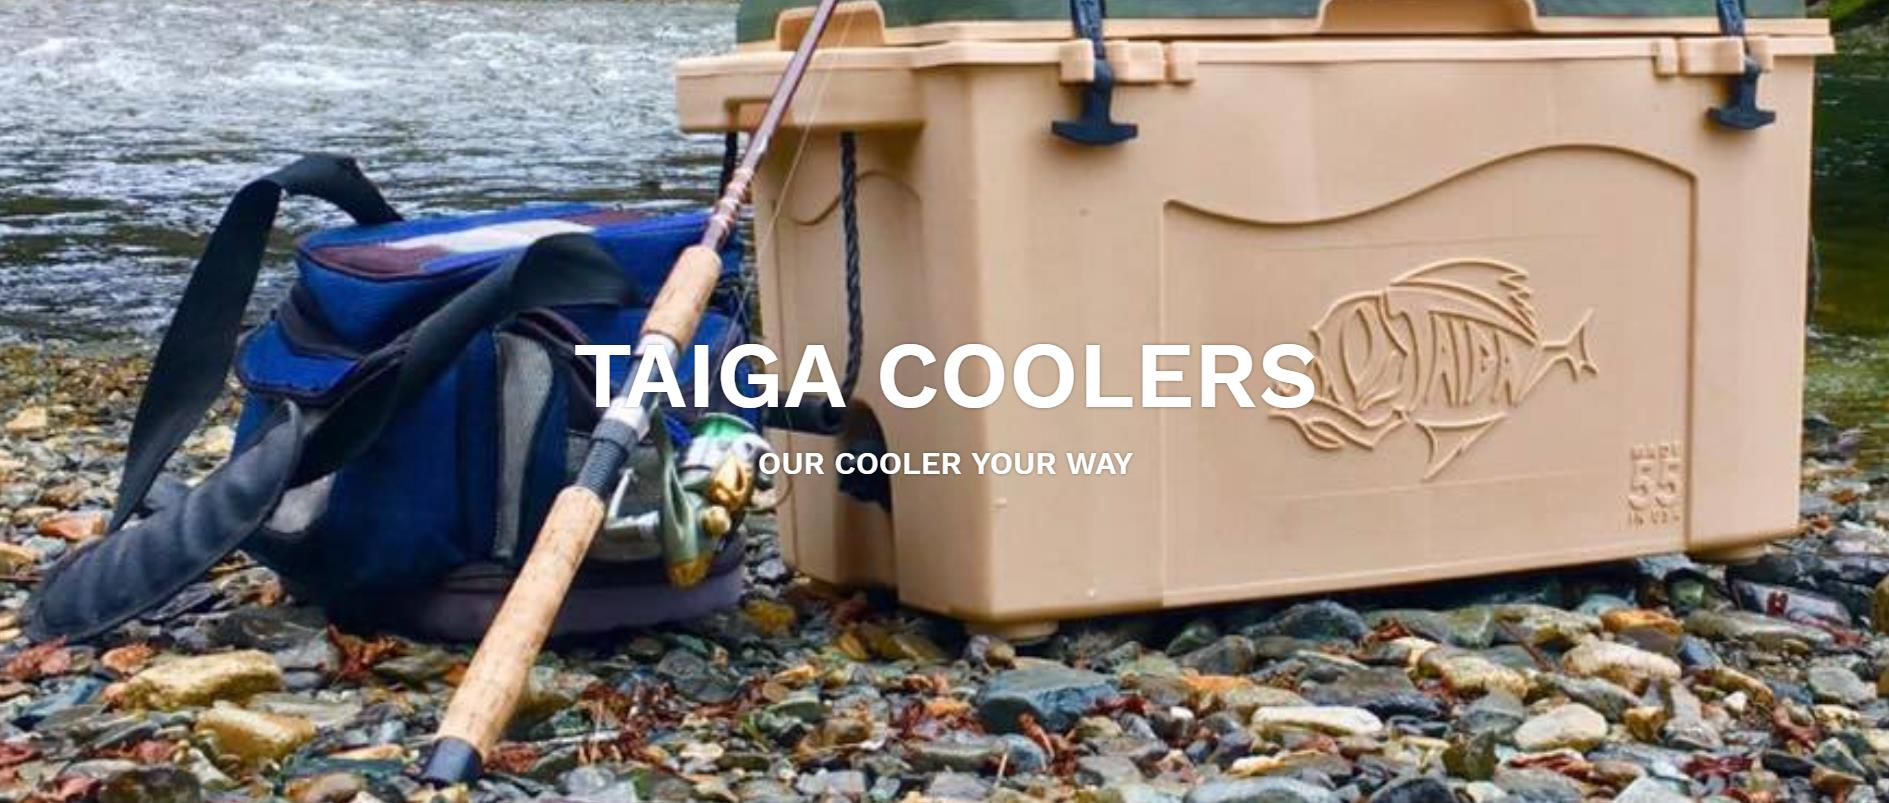 Taiga Coolers – Our Cooler Your Way